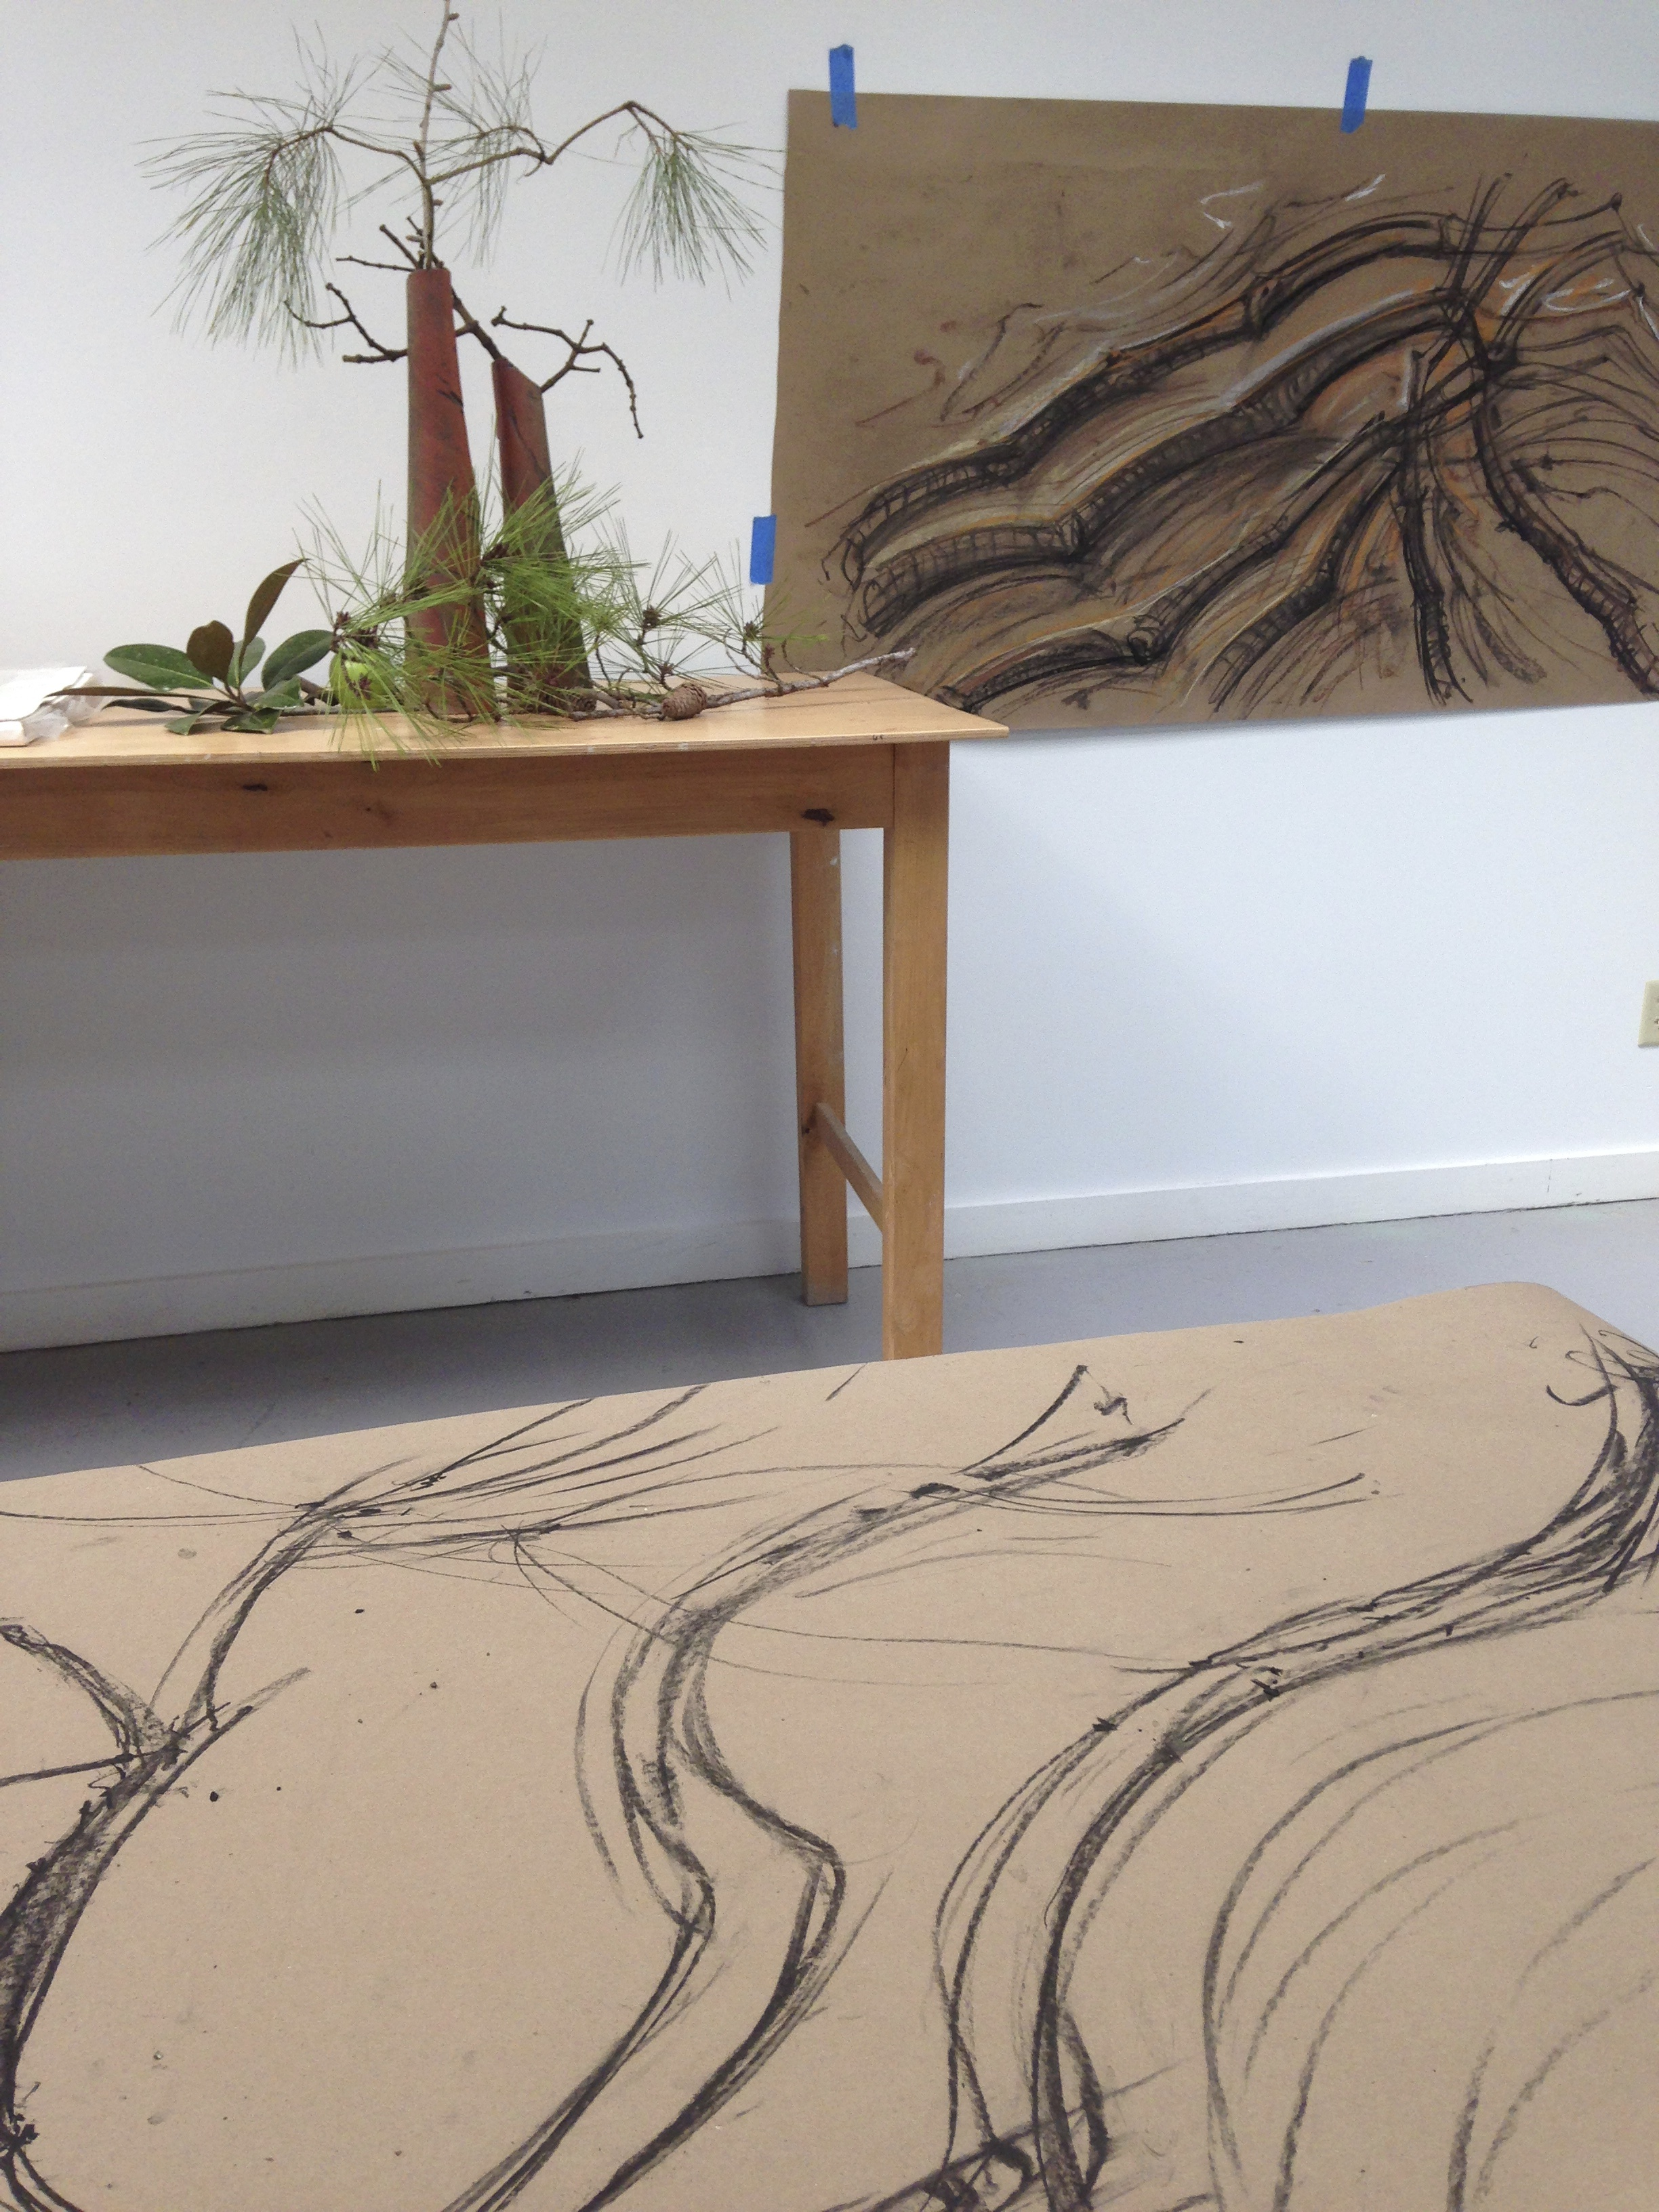 In this large charcoal drawing you can see the influence of those long needled pine branches I collected from the tree just outside the studio.